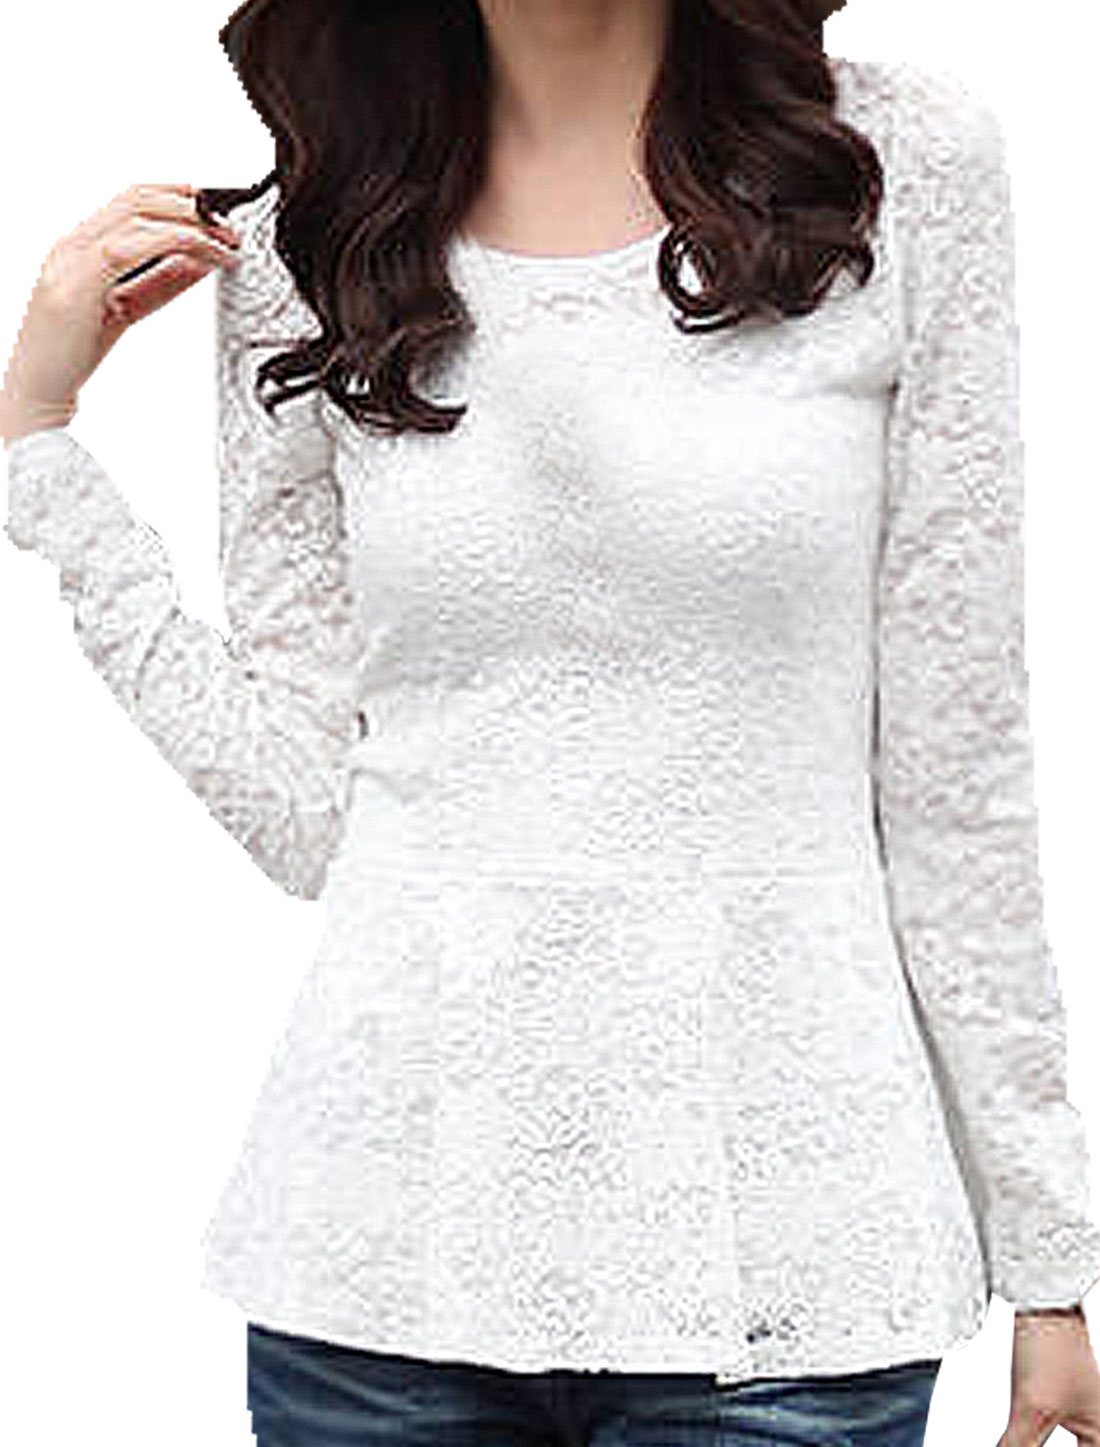 Ladies White Scoop Neck Flower Embroidery Casual Autumn Lace Shirt XS